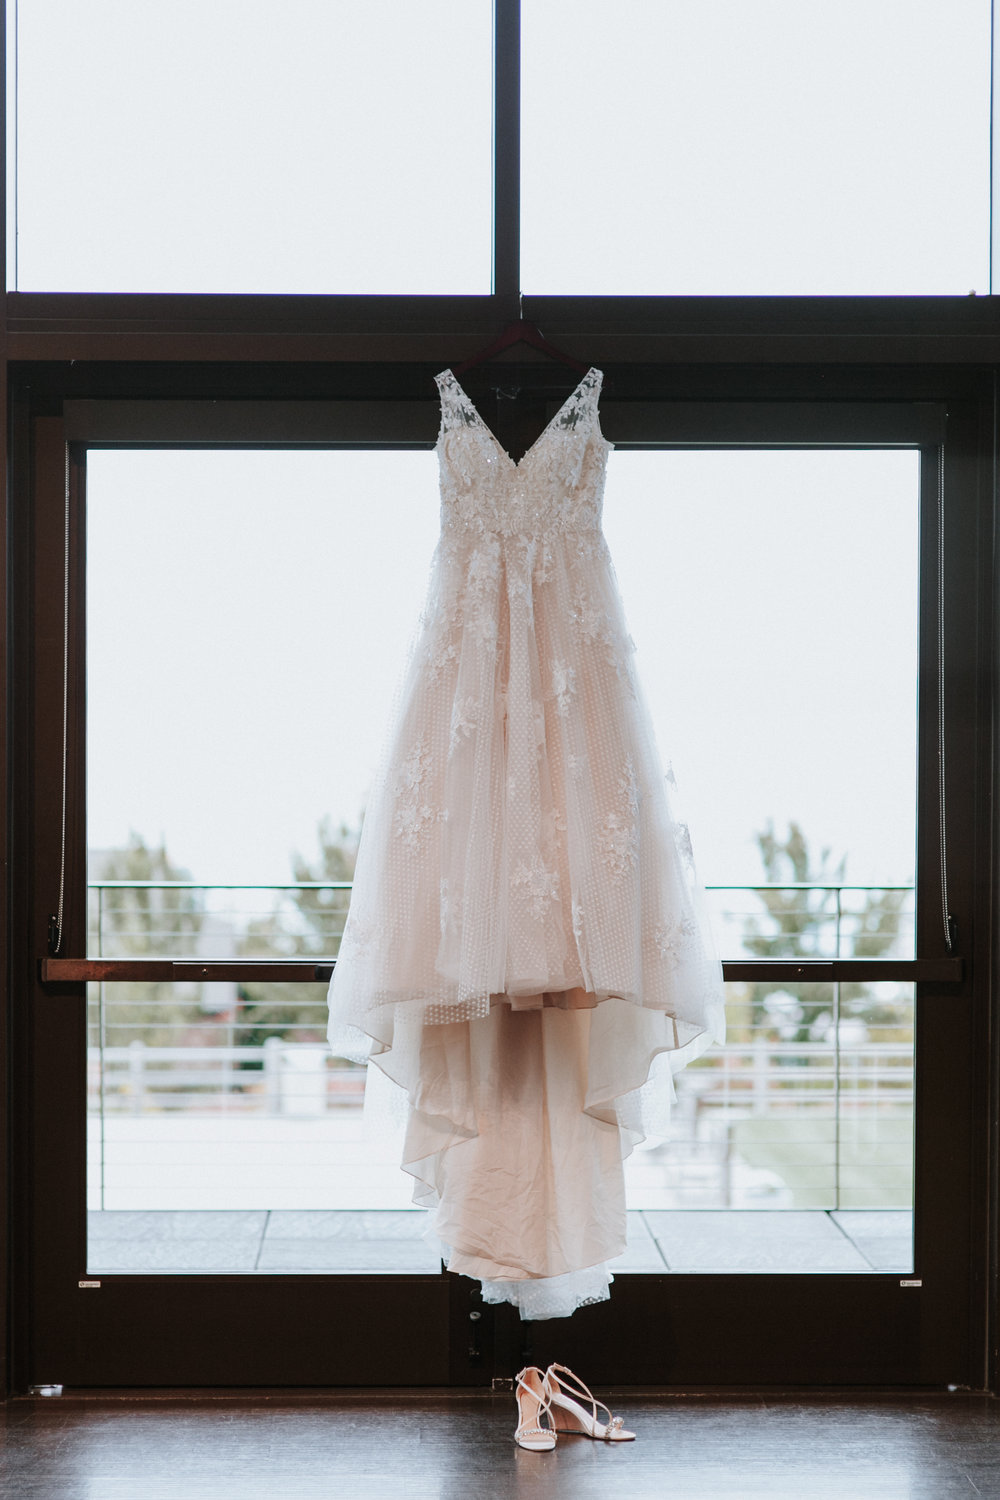 Lace wedding dress and shoes hanging